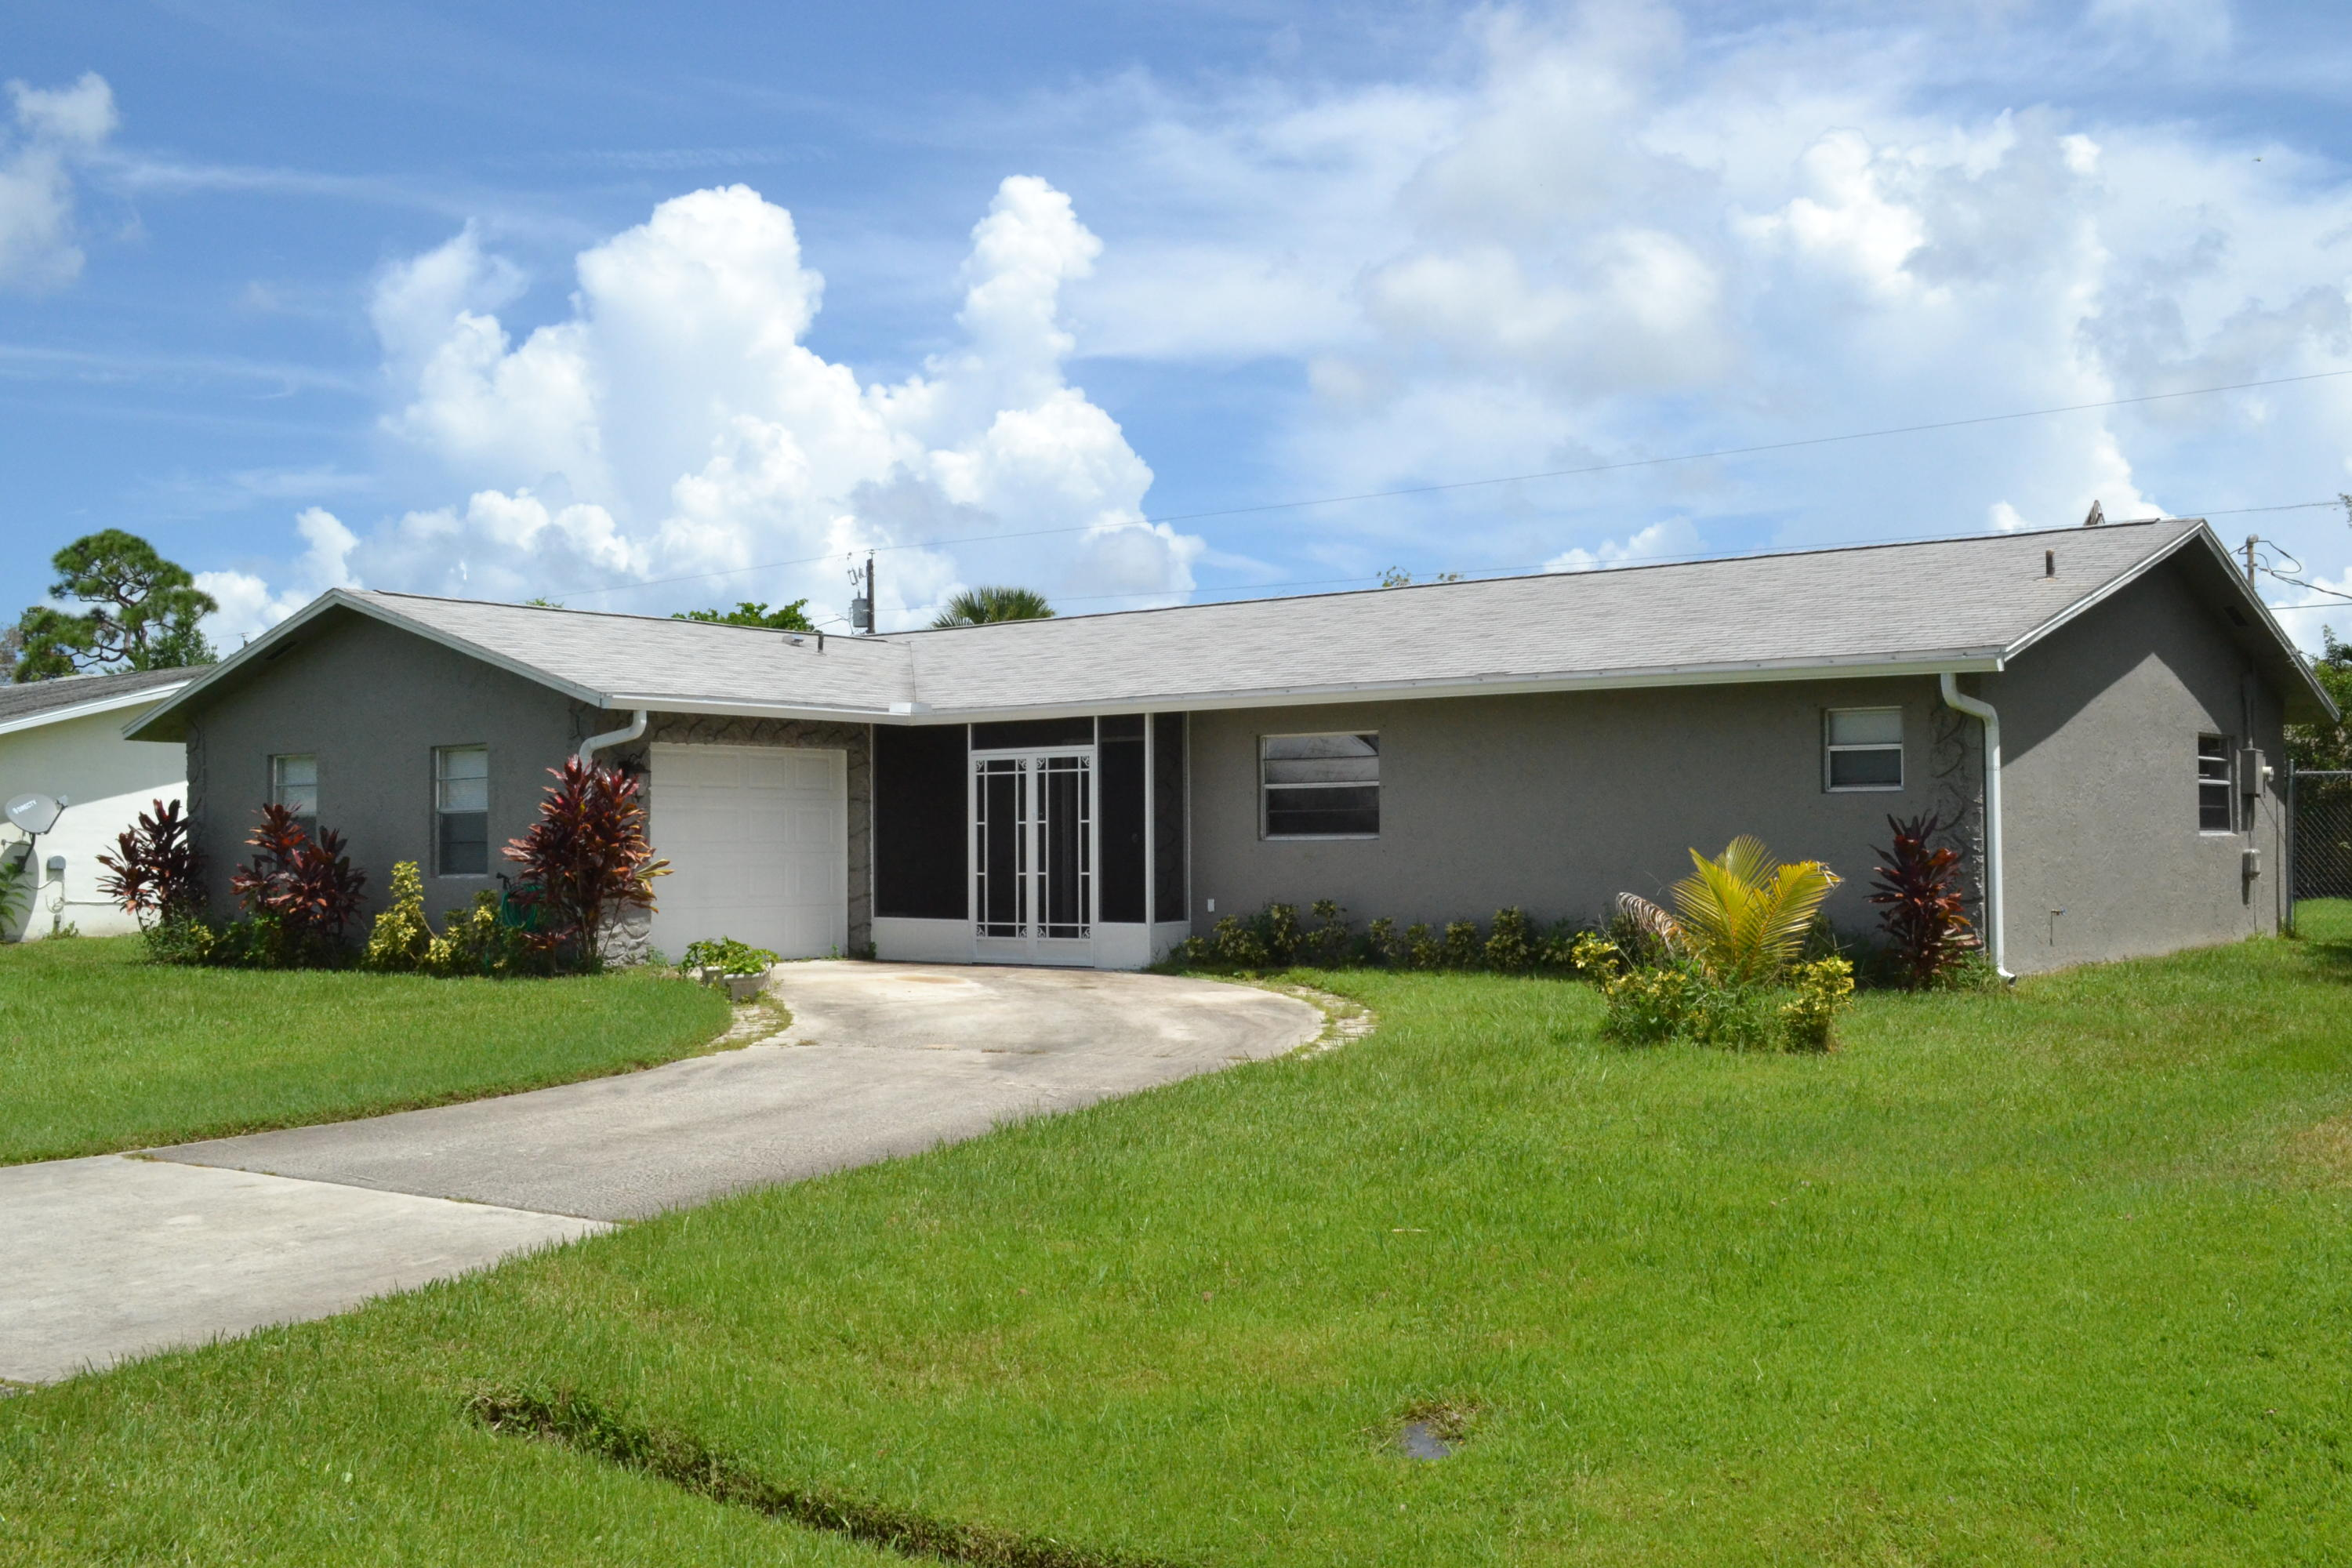 542 SE Brookside Terrace N 34953 - One of Port Saint Lucie Homes for Sale